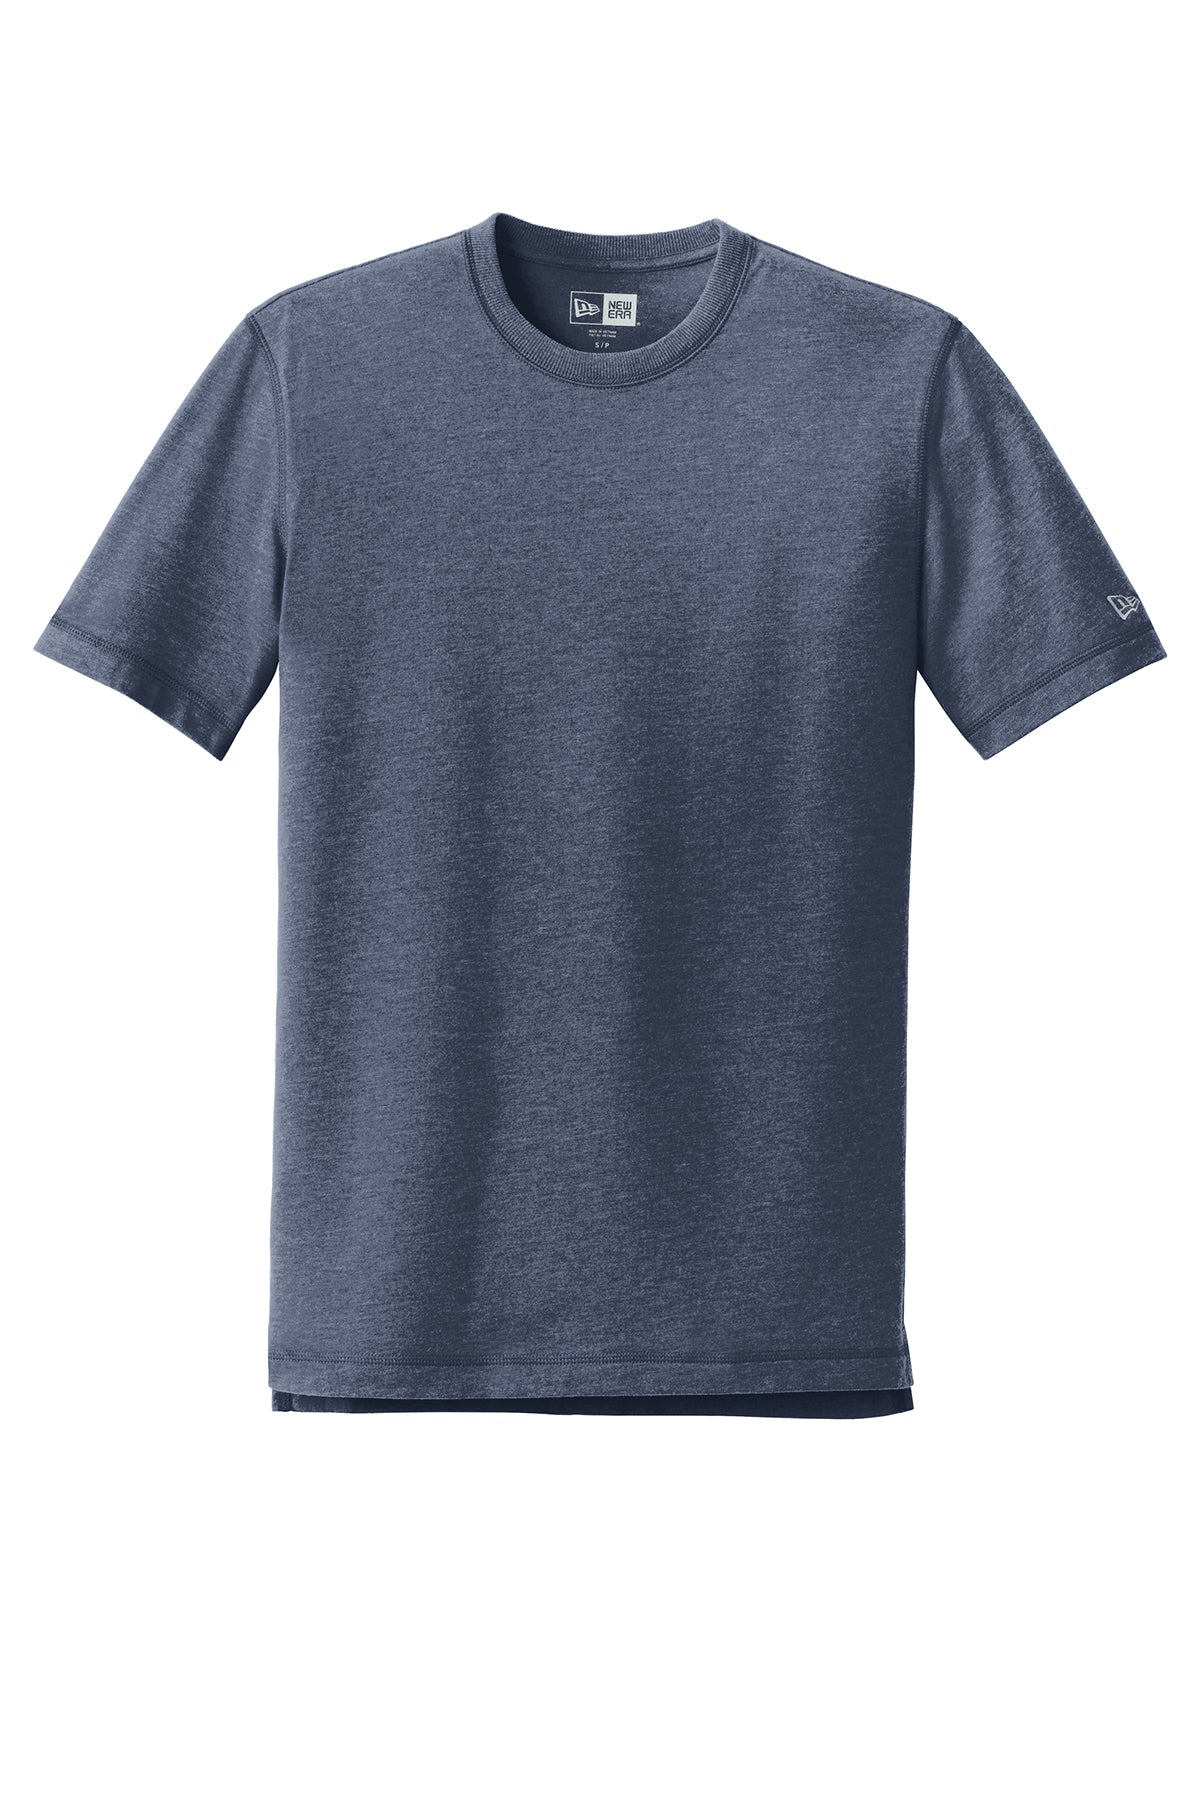 Suede Cotton Crew Tee Shirt